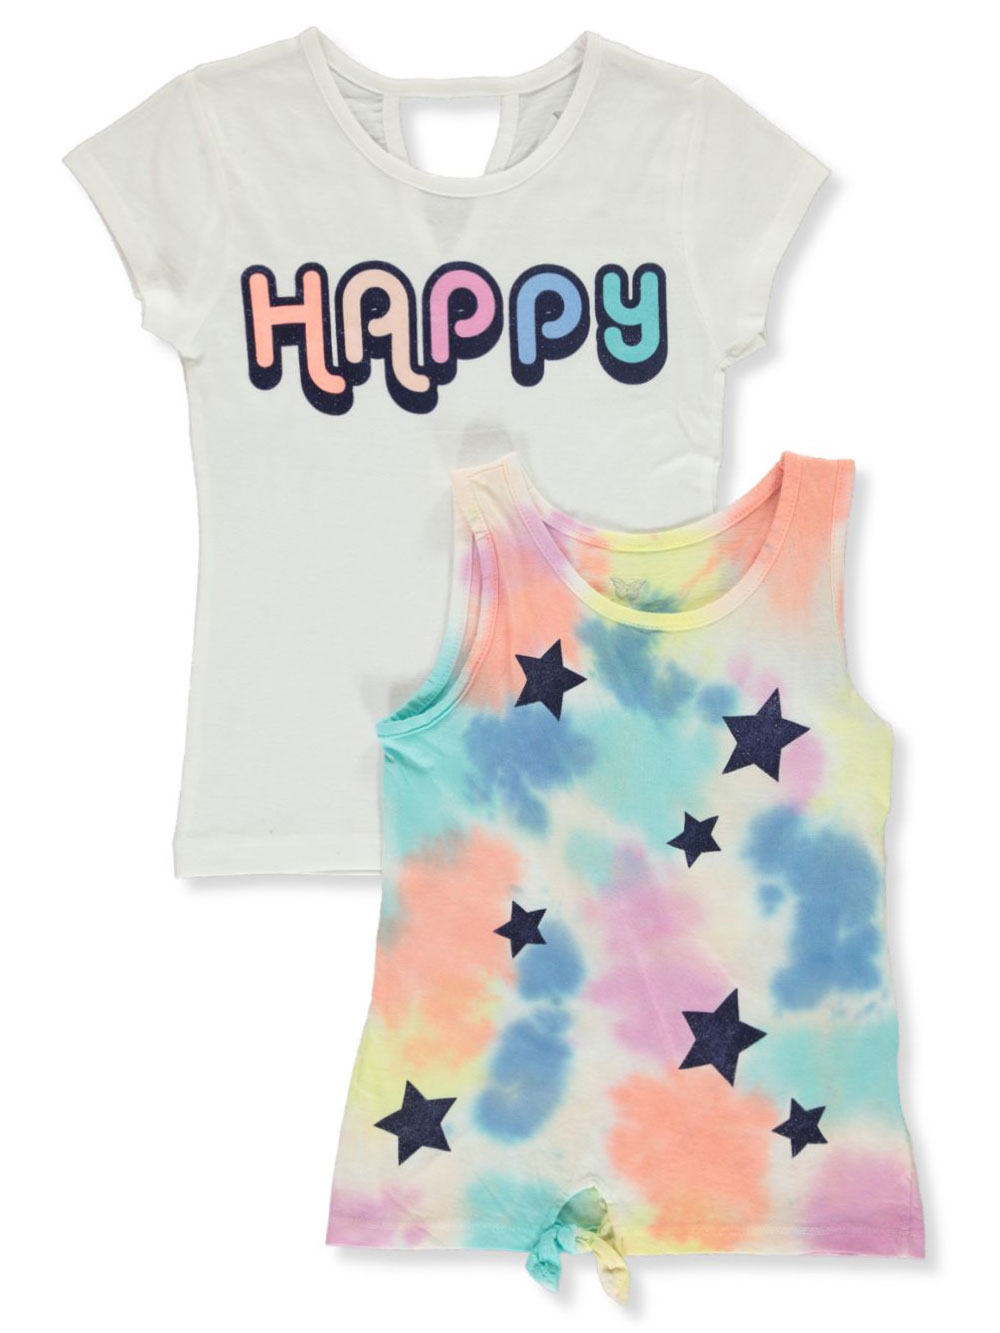 Size 12 Tank Tops for Girls